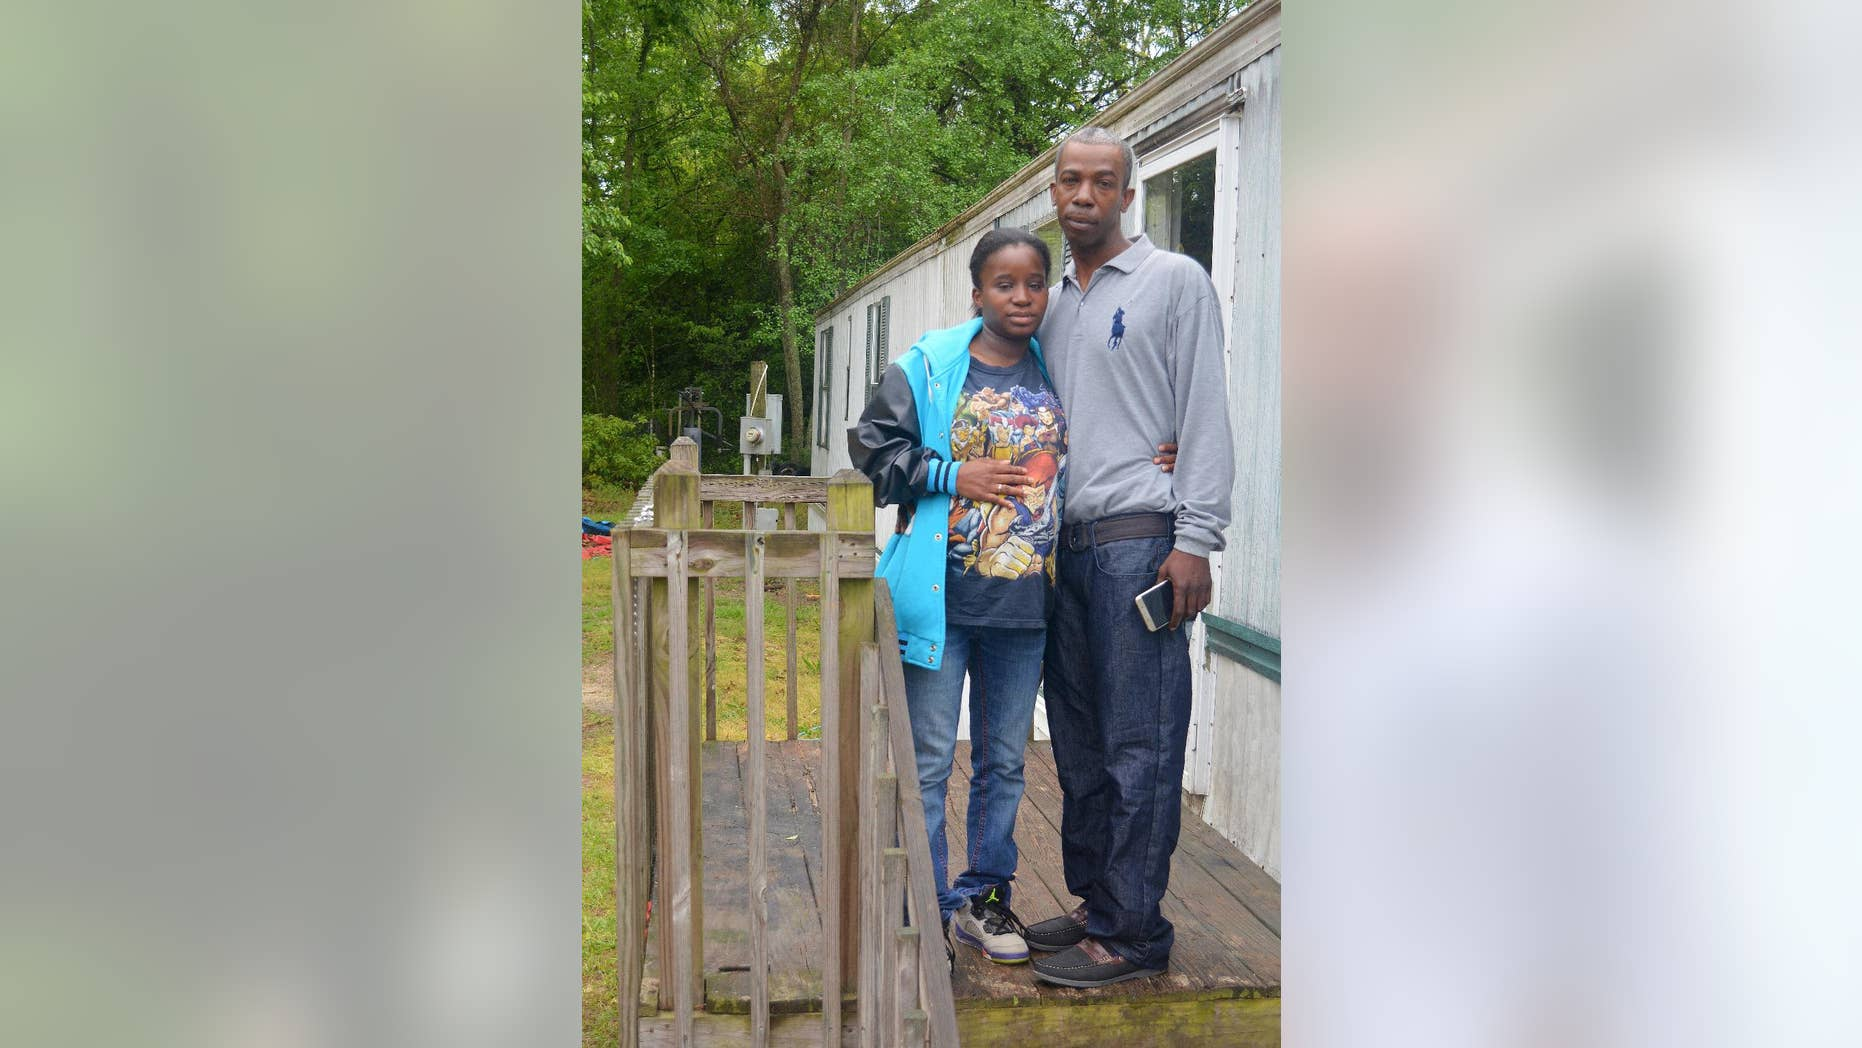 HFM April 13   In this April 12, 2016, photo, Lakeya Hicks and Elijah Pontoon stand outside their home in Aiken, South Carolina. The couple is speaking out about the 2014 traffic stop they say ended in public humiliation over an invasive cavity search for drugs that didn't exist. Hicks and Pontoon are suing the Aiken Department of Public Safety for illegally searching them on the side of a busy road. (AP Photo/Meg Kinnard)